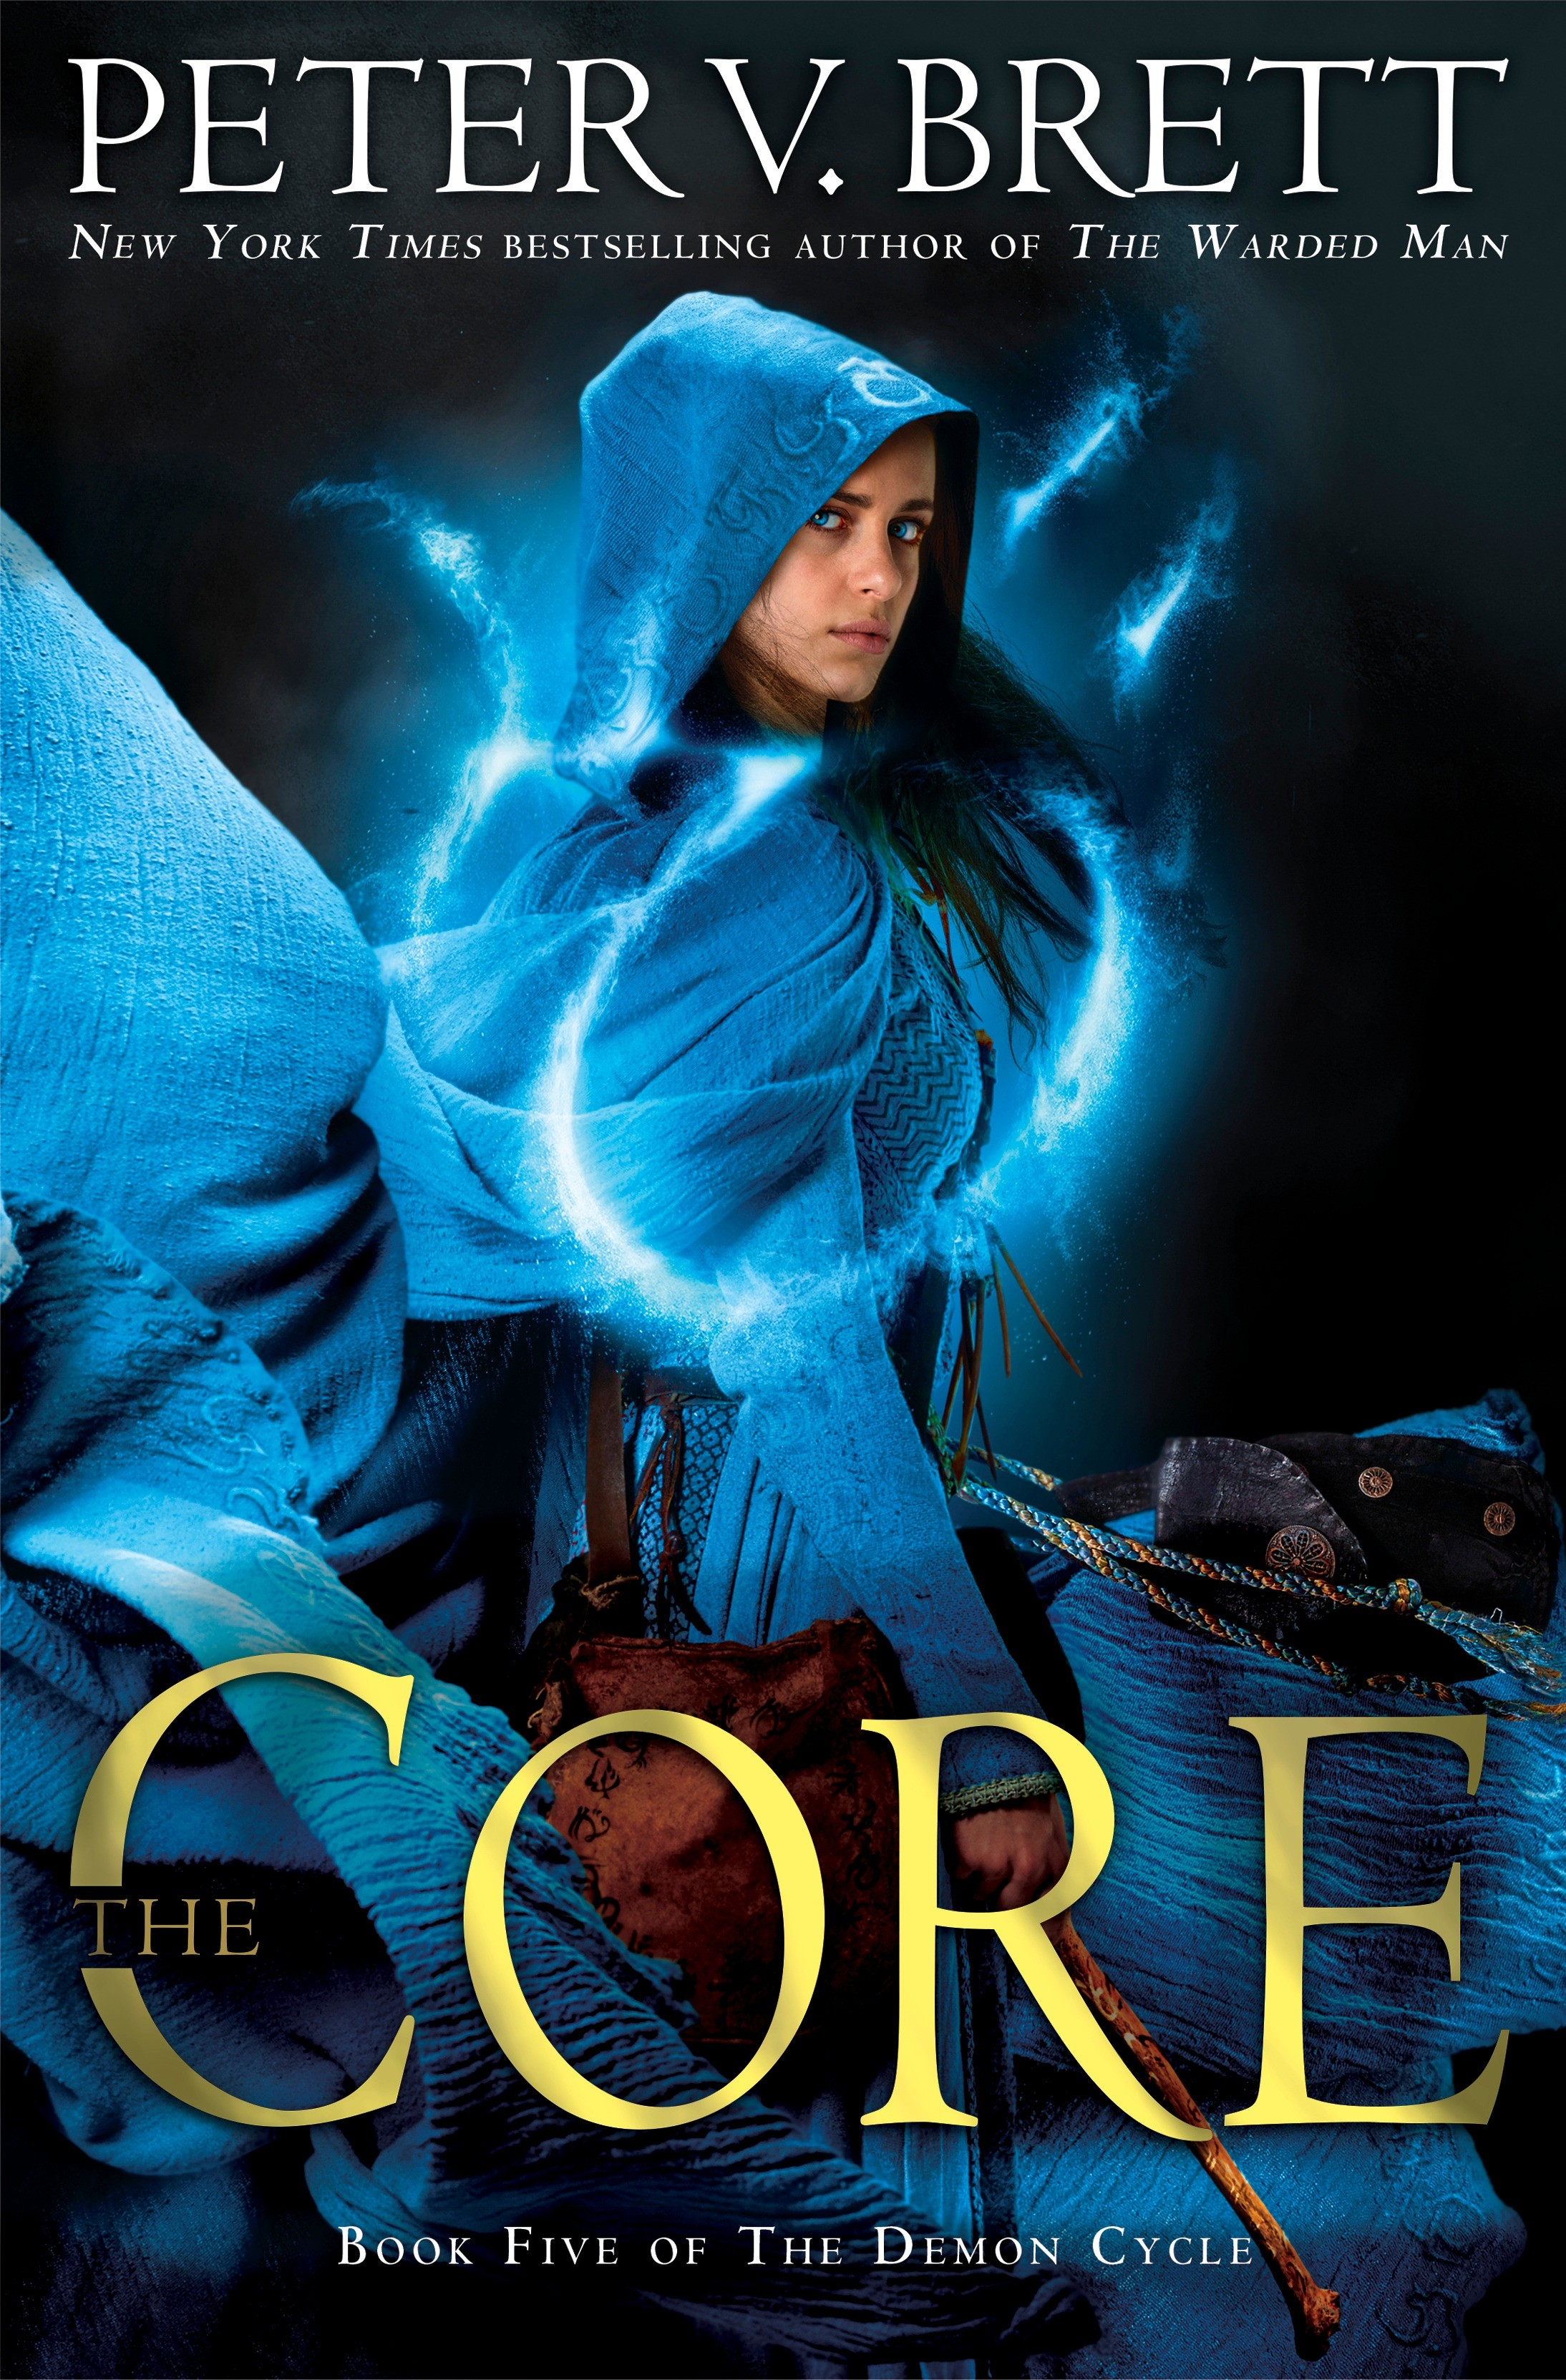 The Core (preorder)